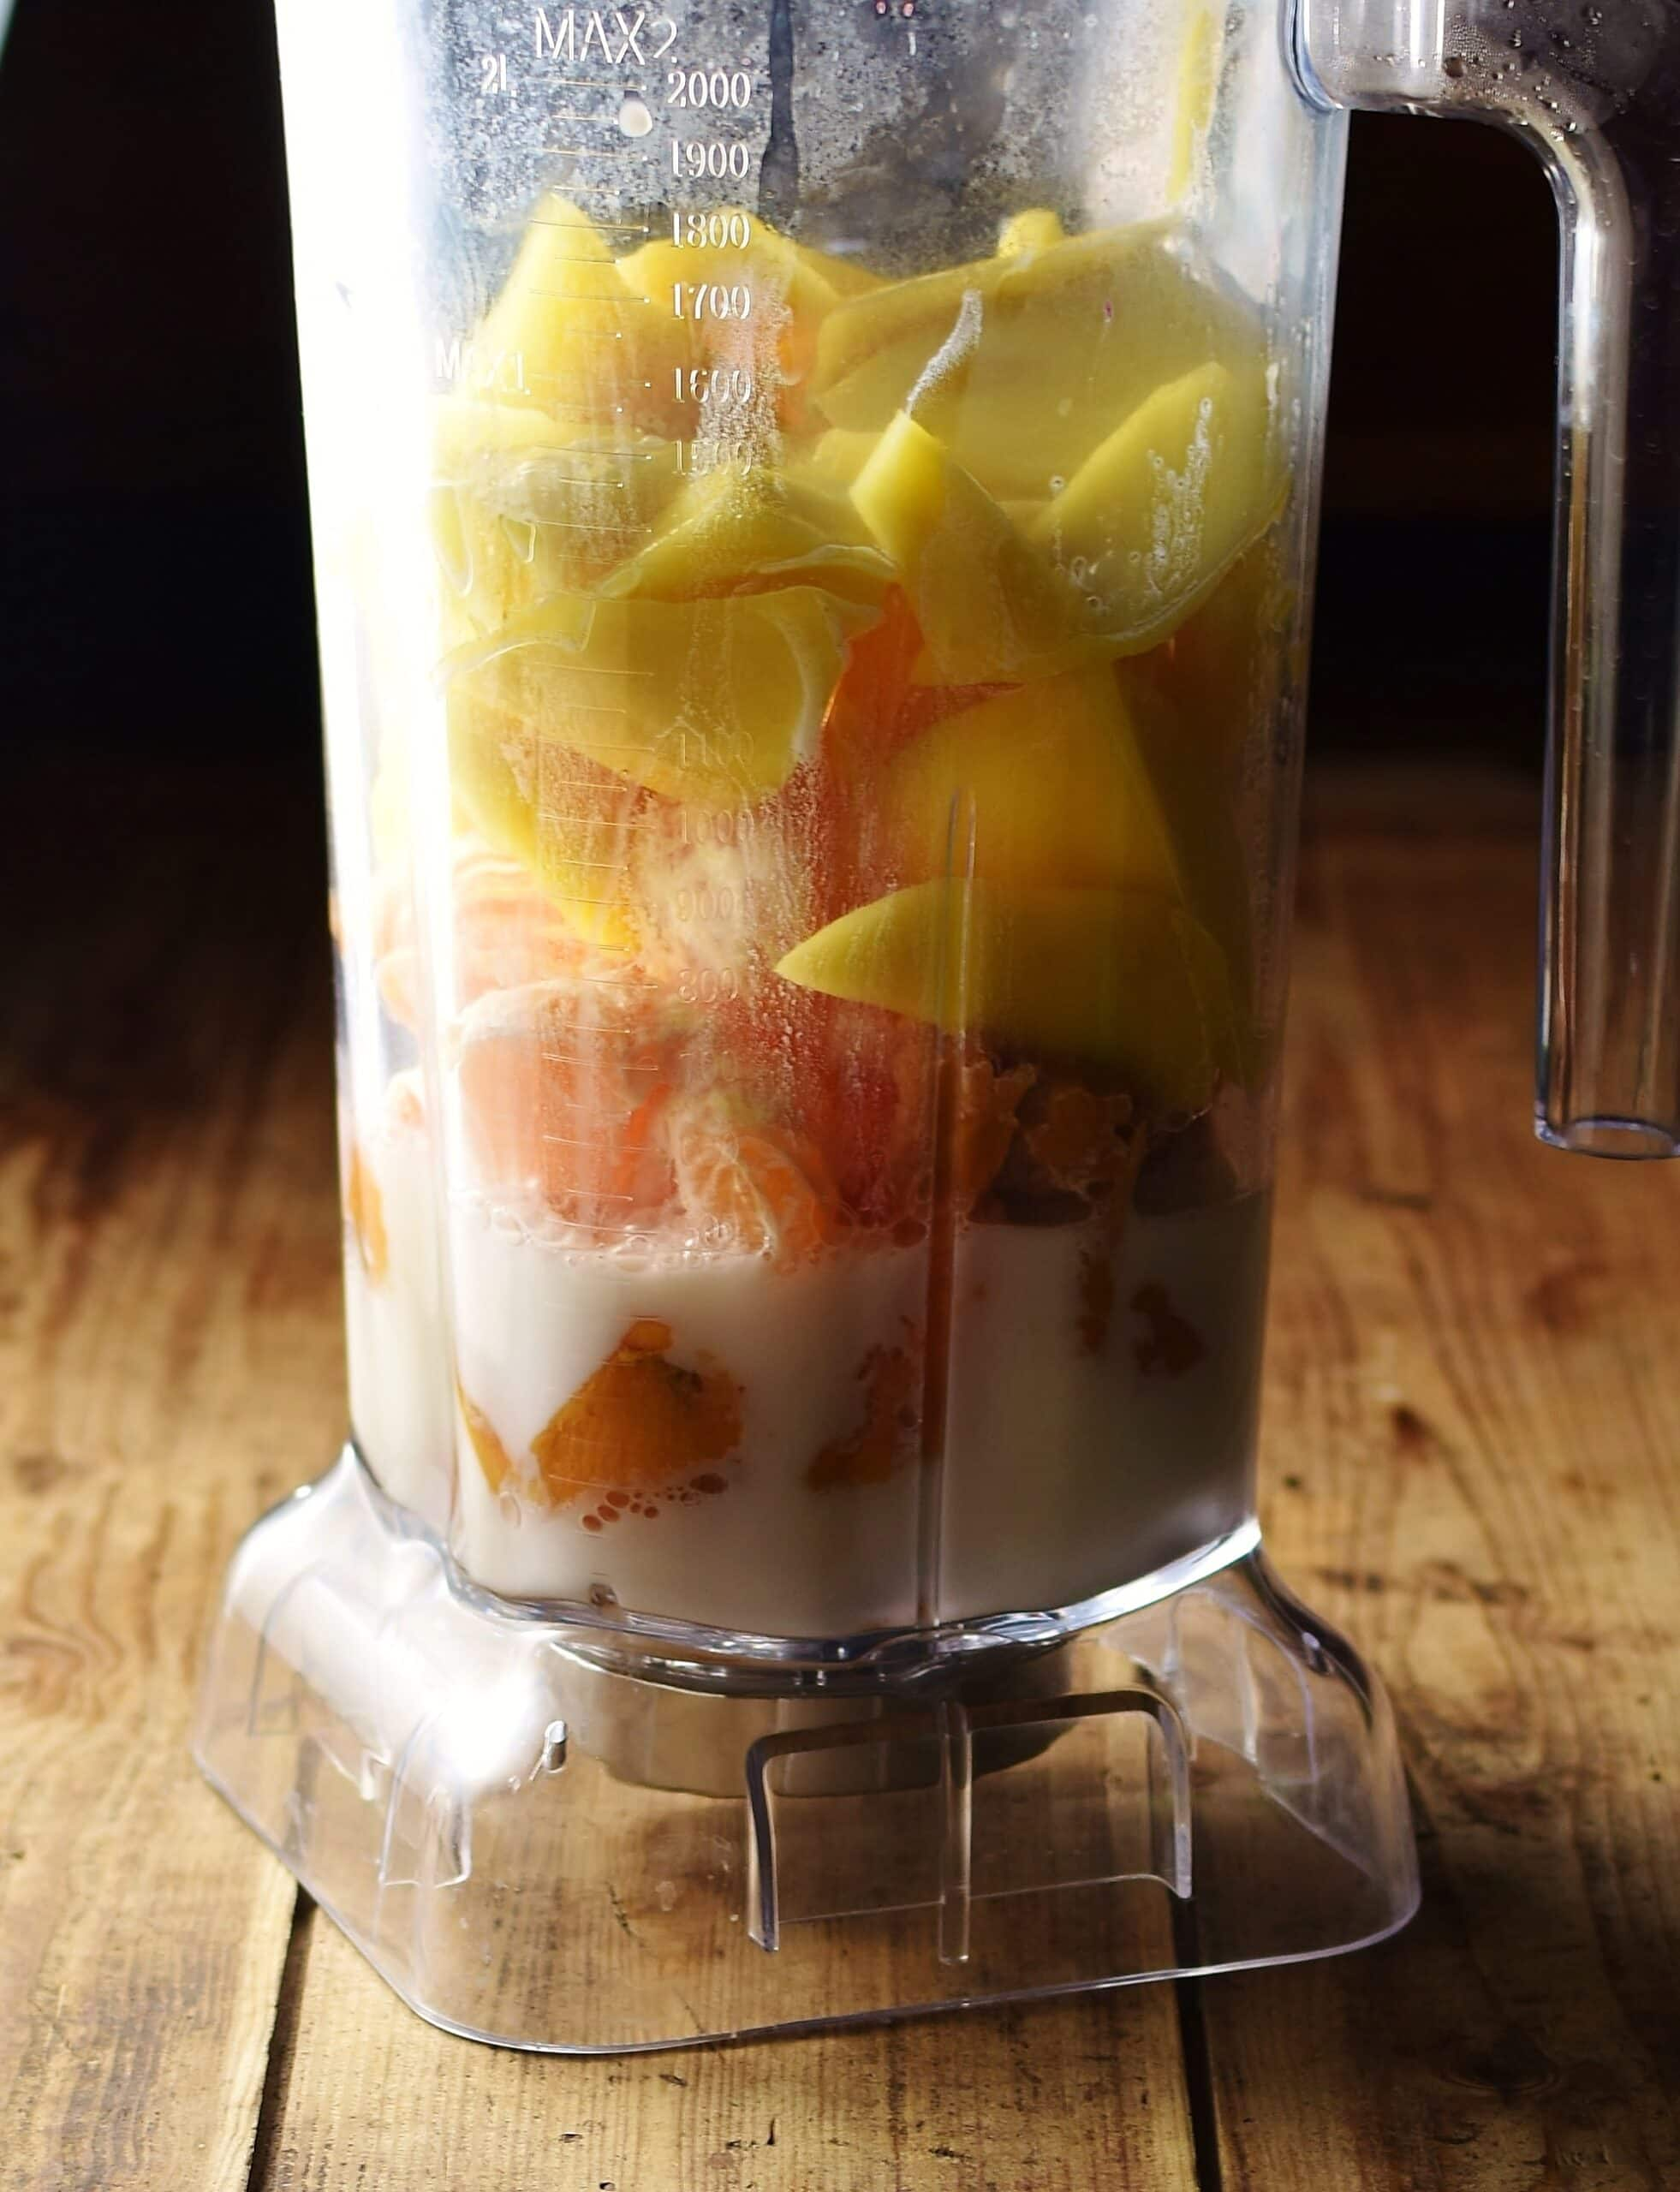 Chopped mango, tangerine, sweet potato and milk in blender.